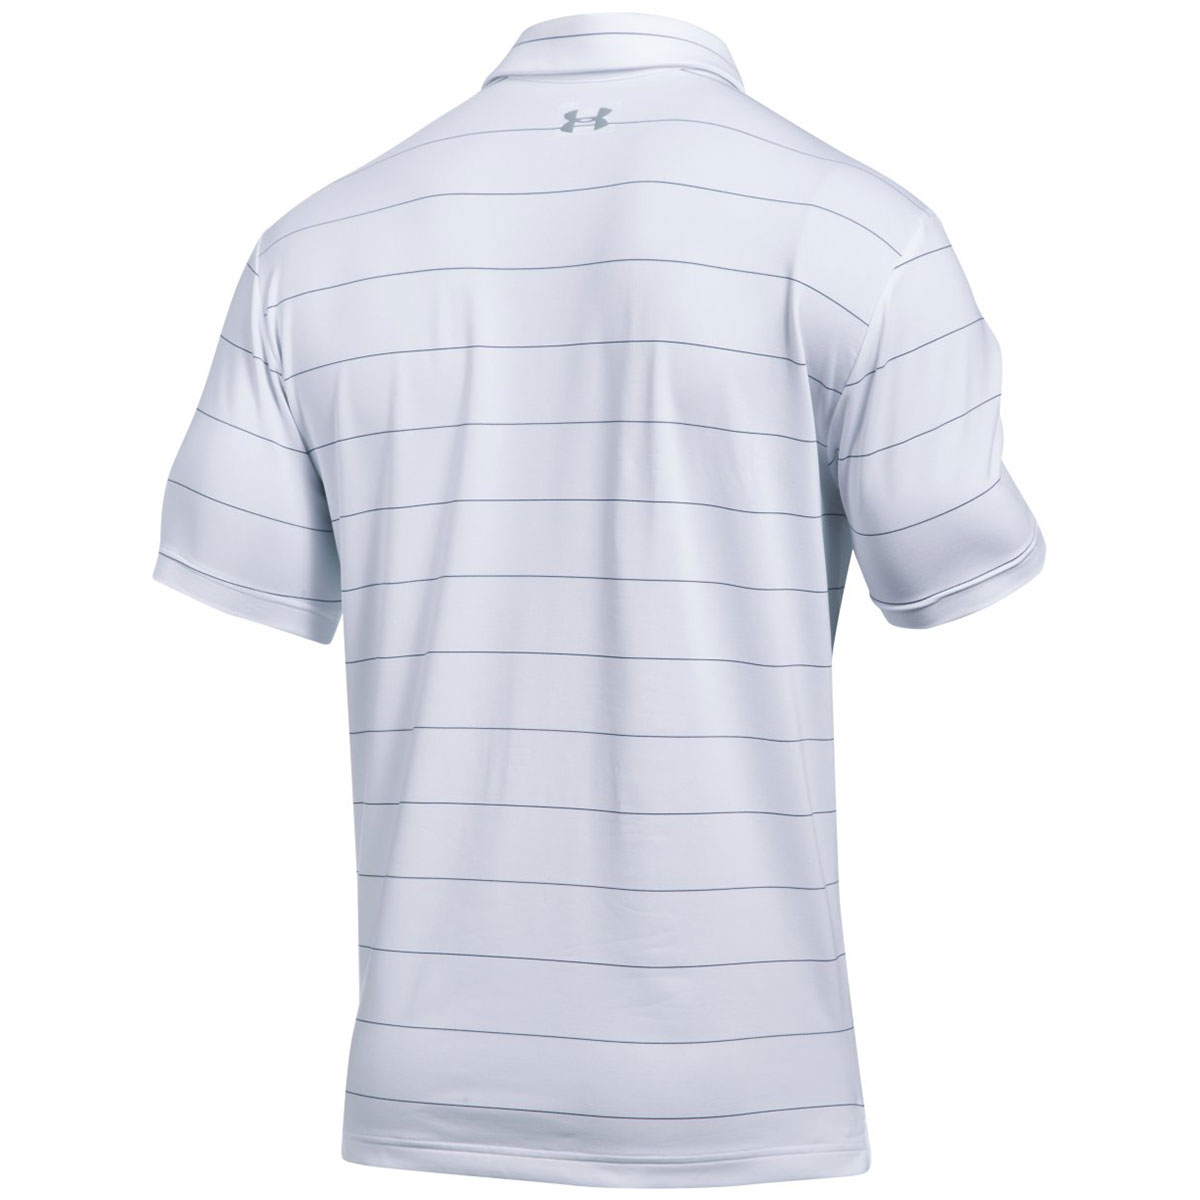 Under-Armour-Mens-UA-Playoff-Performance-Golf-Polo-Shirt-33-OFF-RRP thumbnail 119